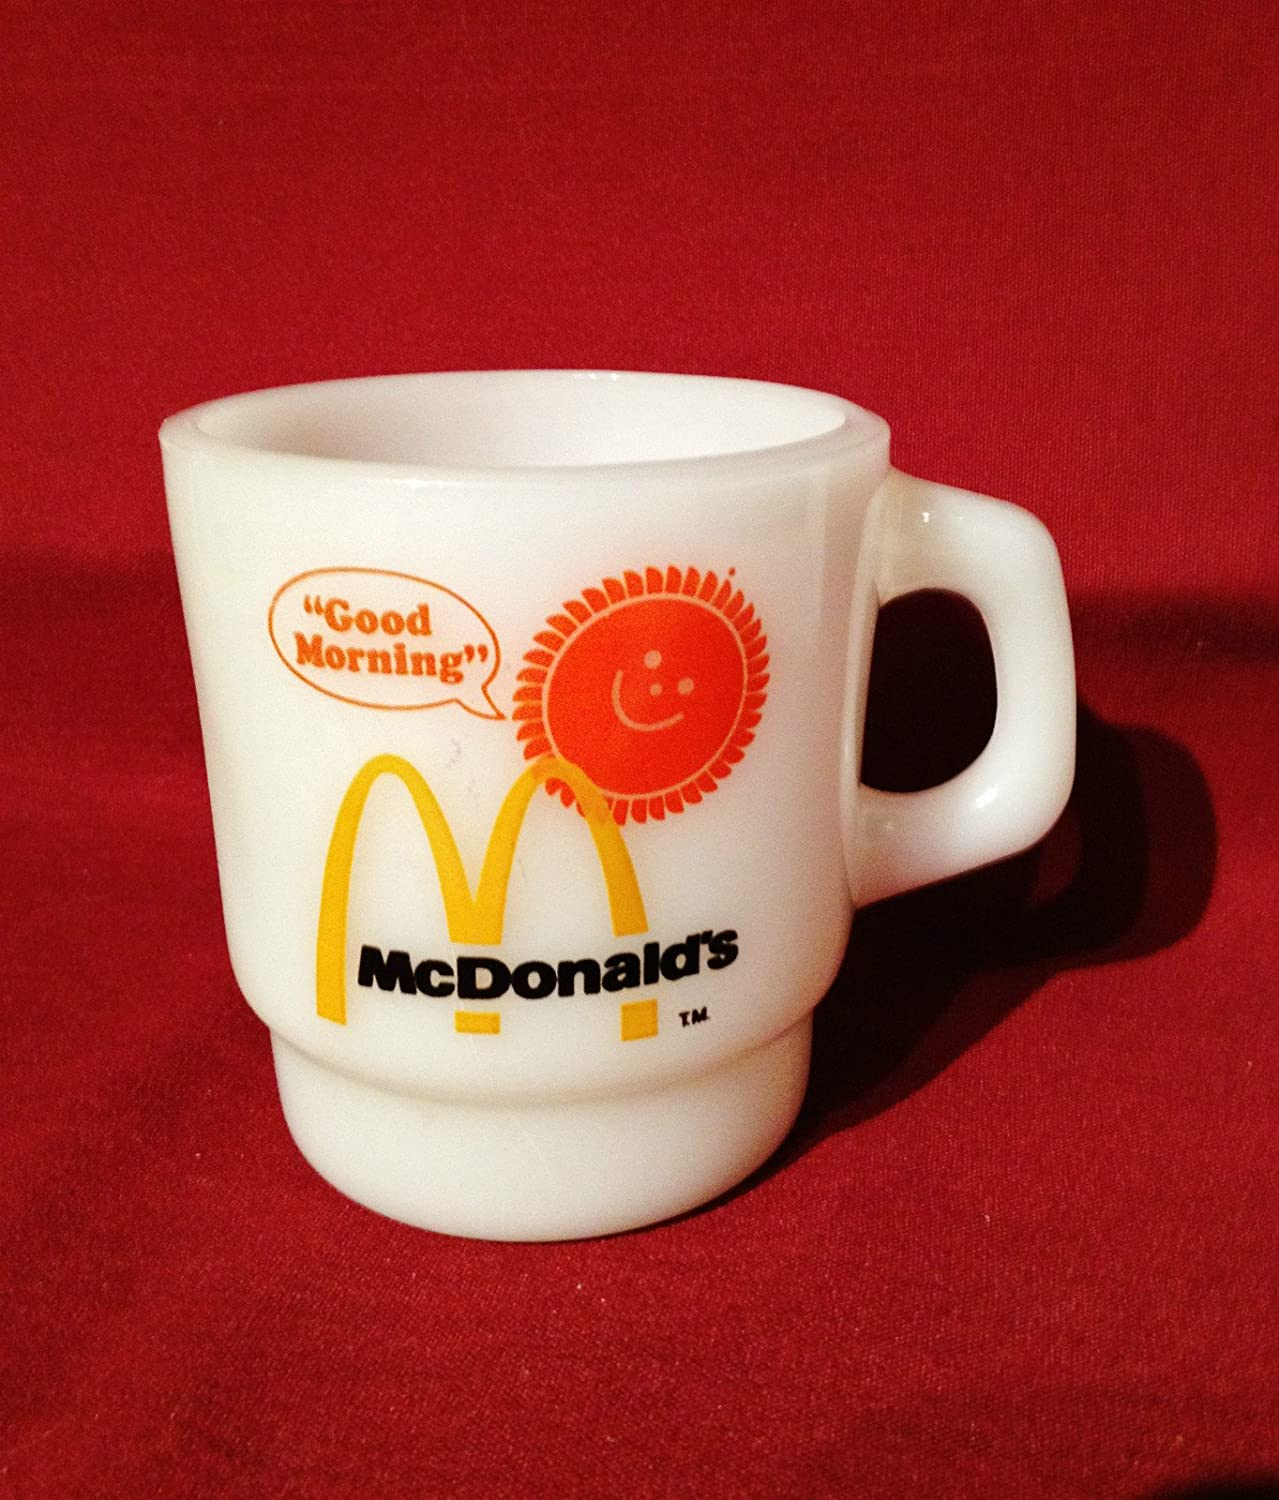 """Collectible Vintage """"Good Morning"""" Mcdonald's Oven-proof Anchor Hocking Milk White Coffee Mug Cup"""